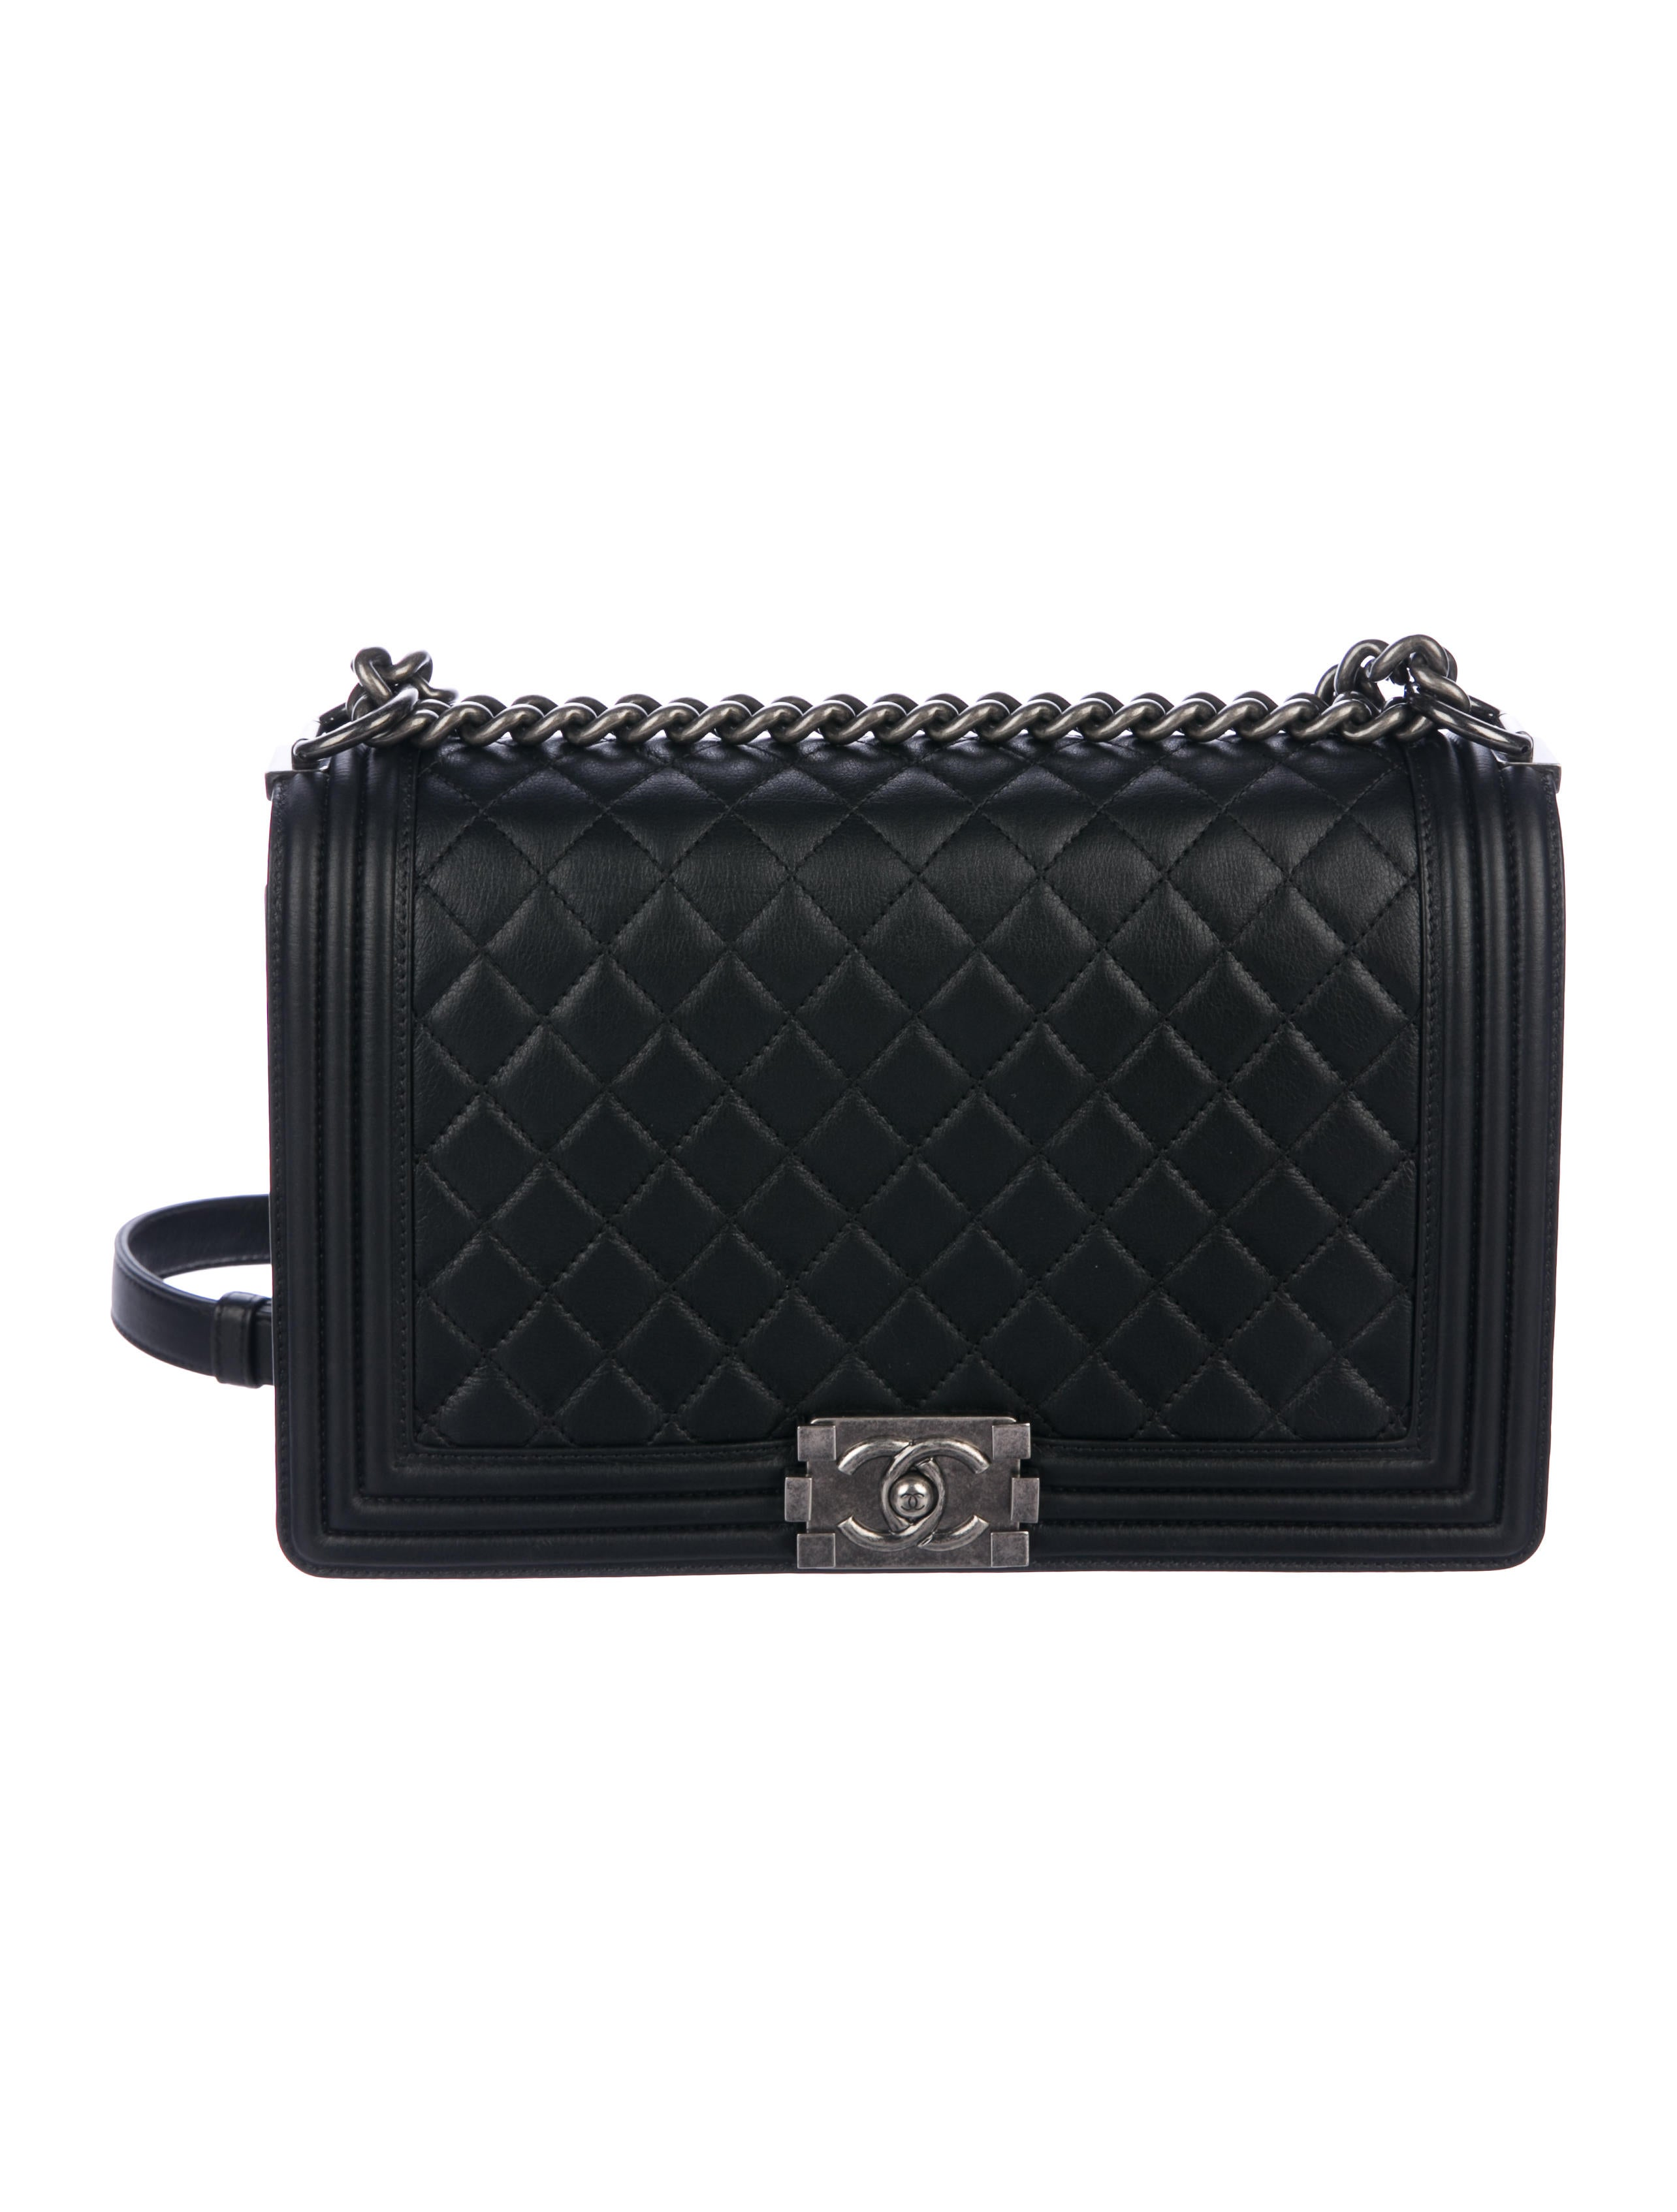 Chanel replica boy reverso bag reference guide forecast to wear for autumn in 2019